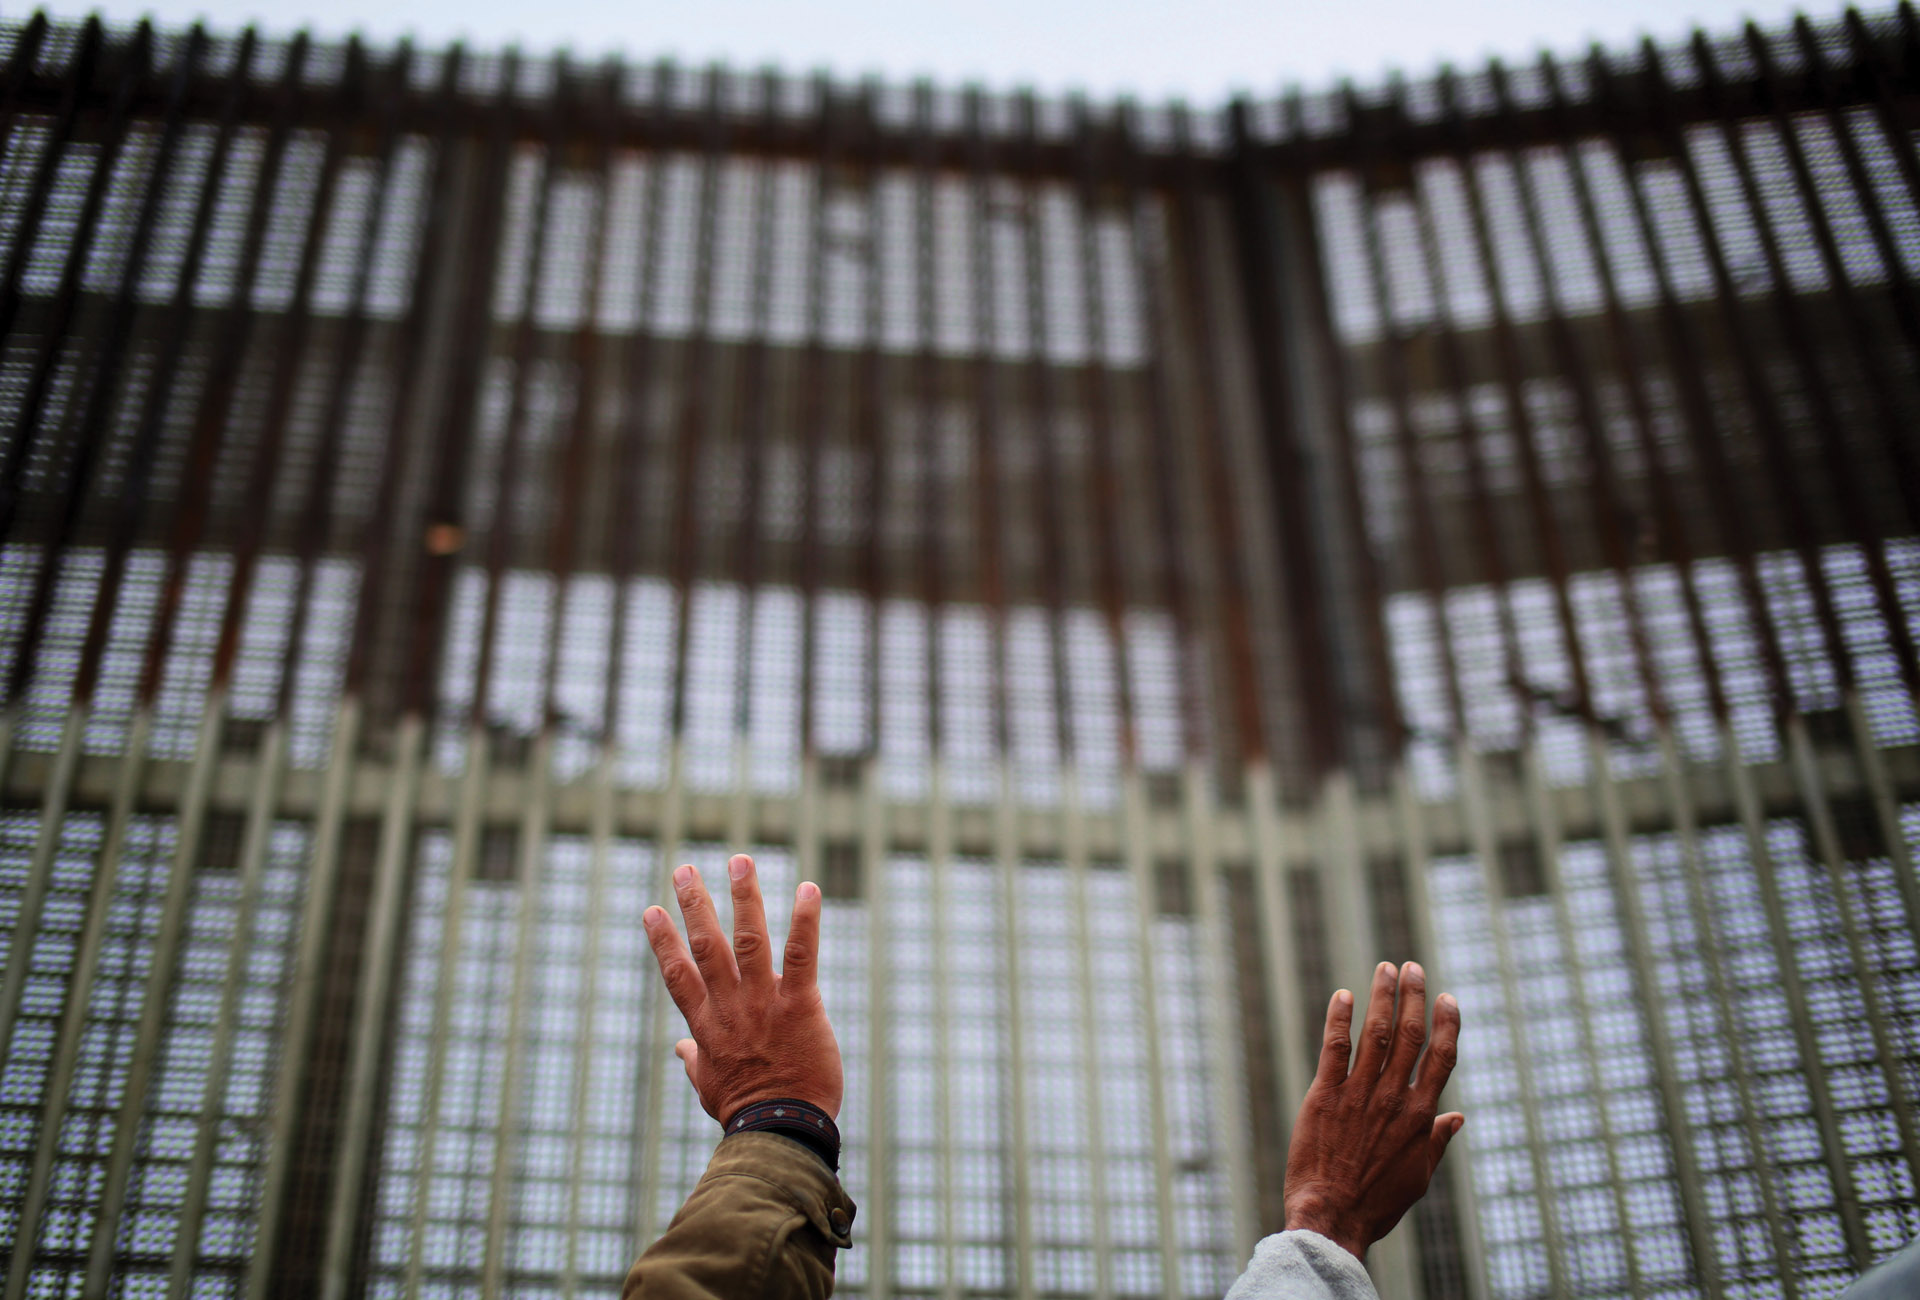 Photo of two outstretched hands in front of a large, imposing border fence.